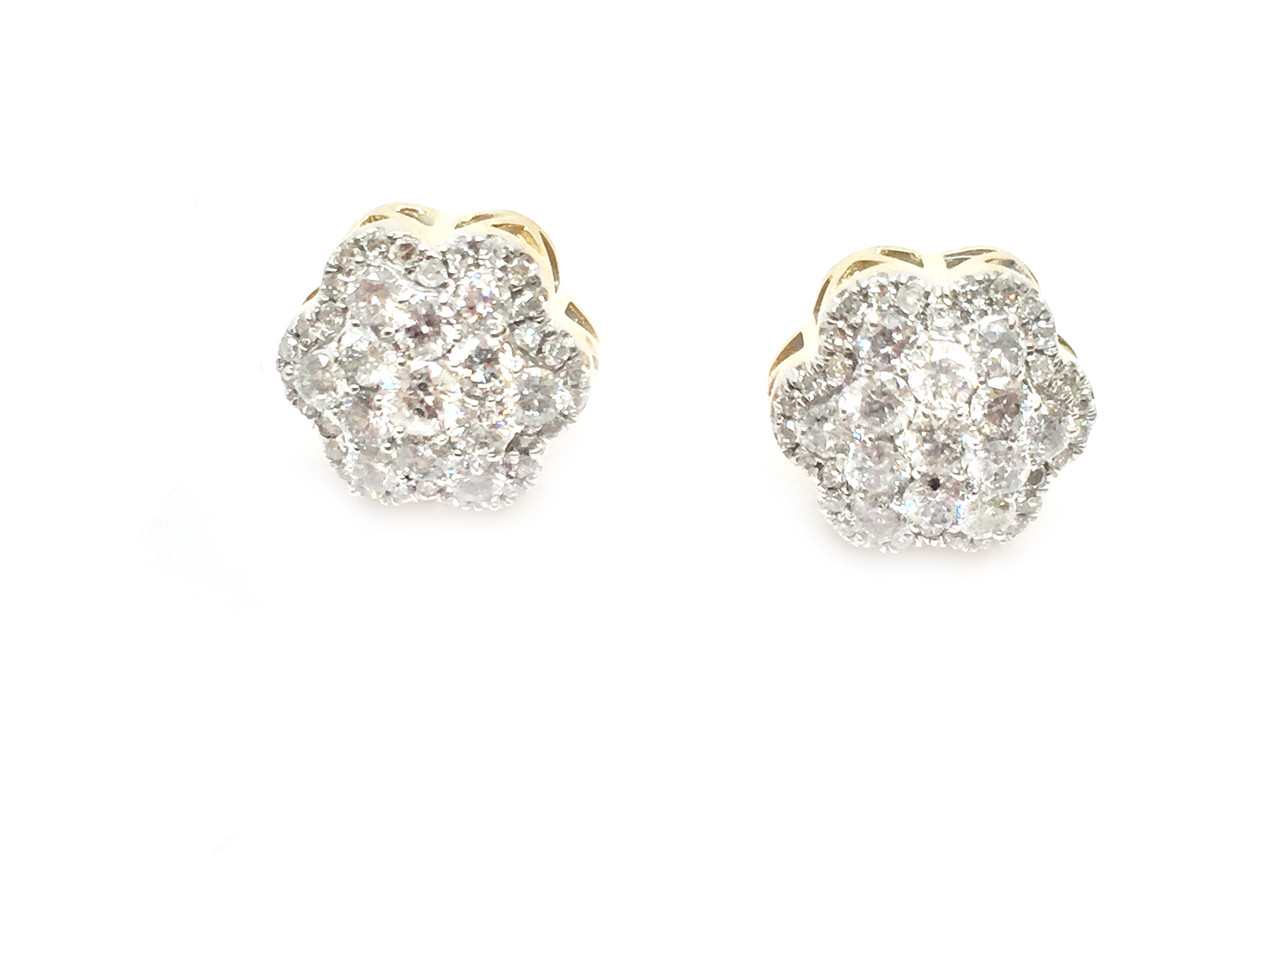 earrings easy round diamond with gold ways to backs attachment ct certified groupon facilitate screw igi stud five white profile